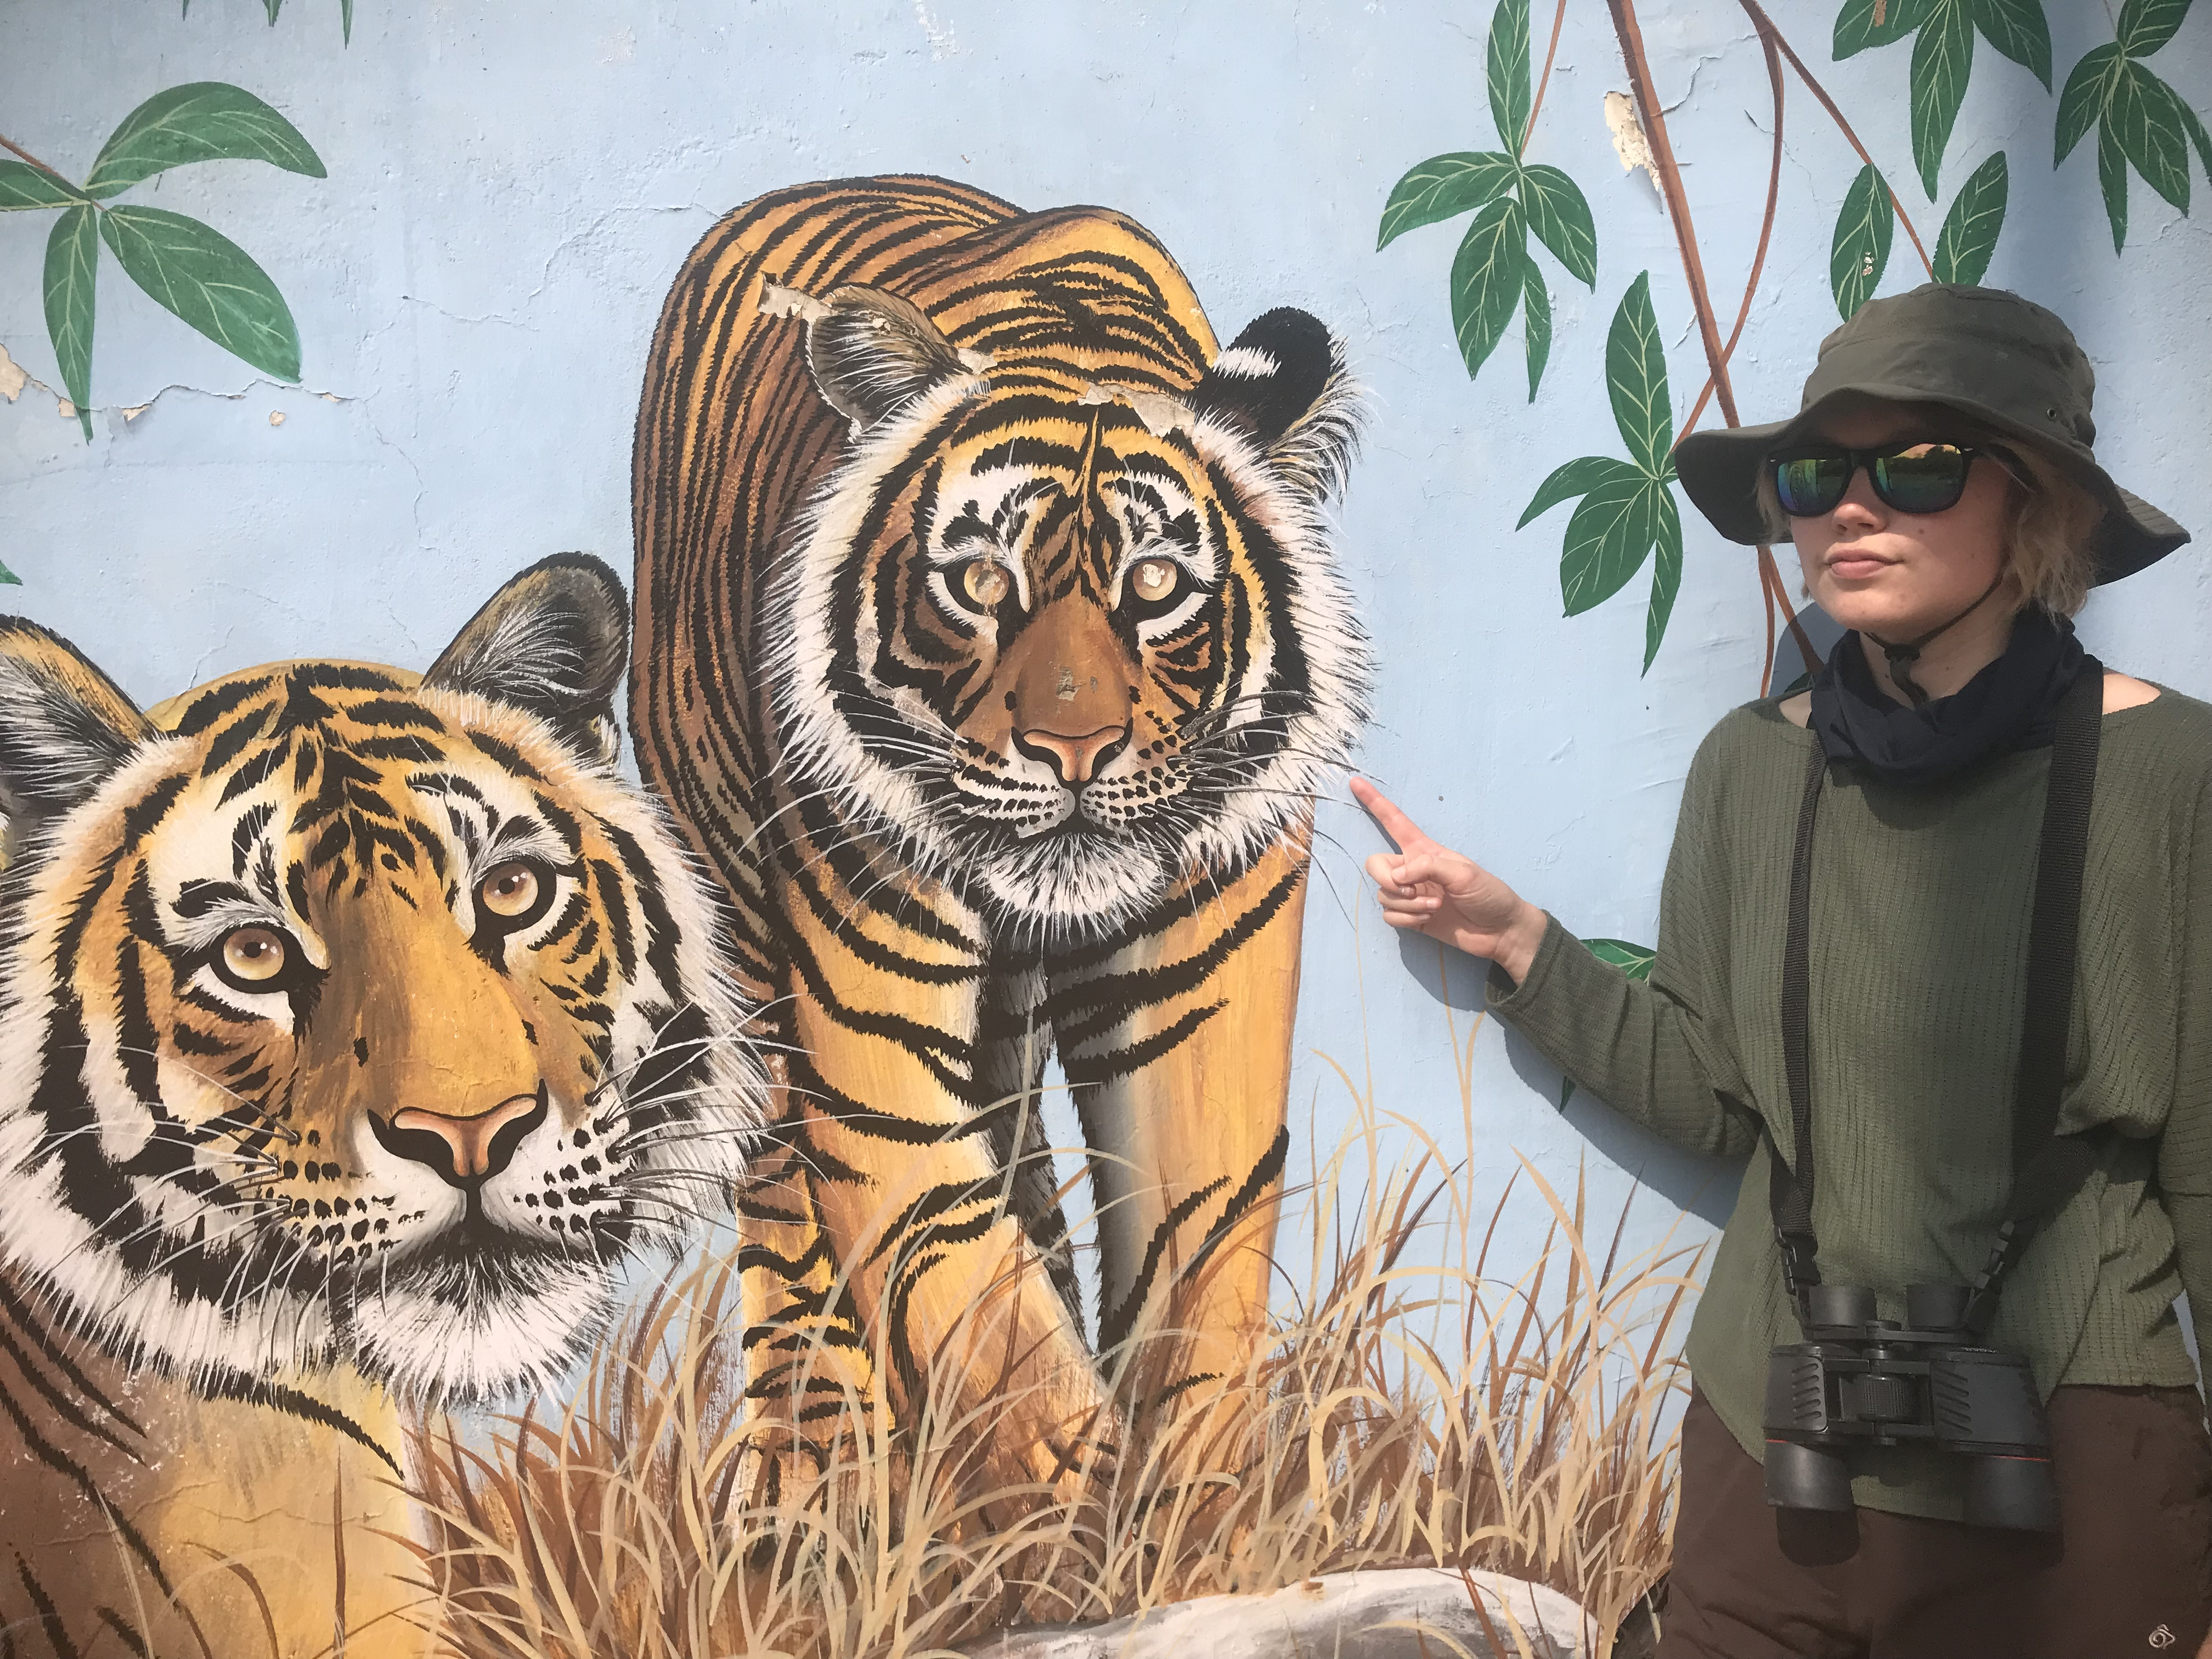 Tiger mural, Ranthambore National Park, India